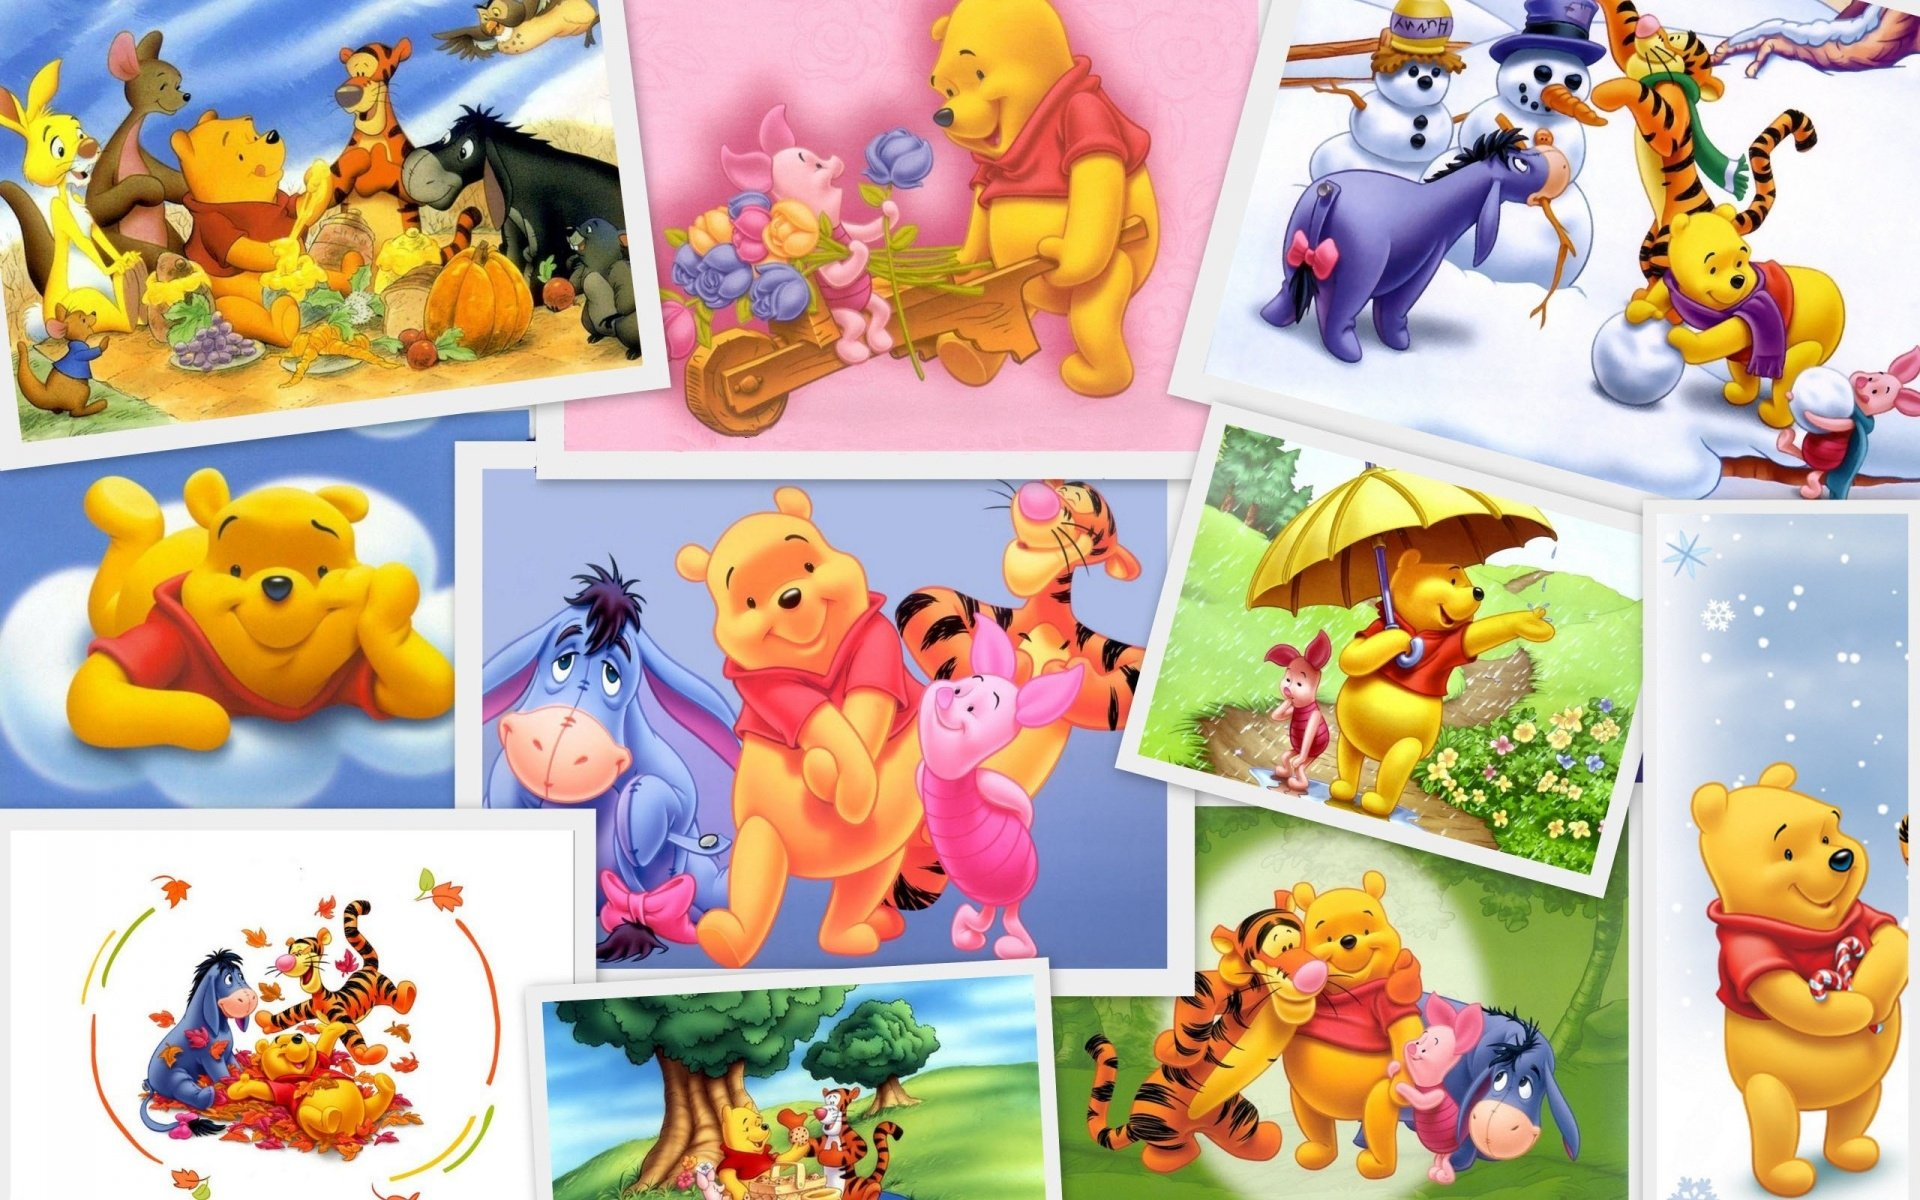 83 Winnie The Pooh HD Wallpapers Background Images Wallpaper Abyss